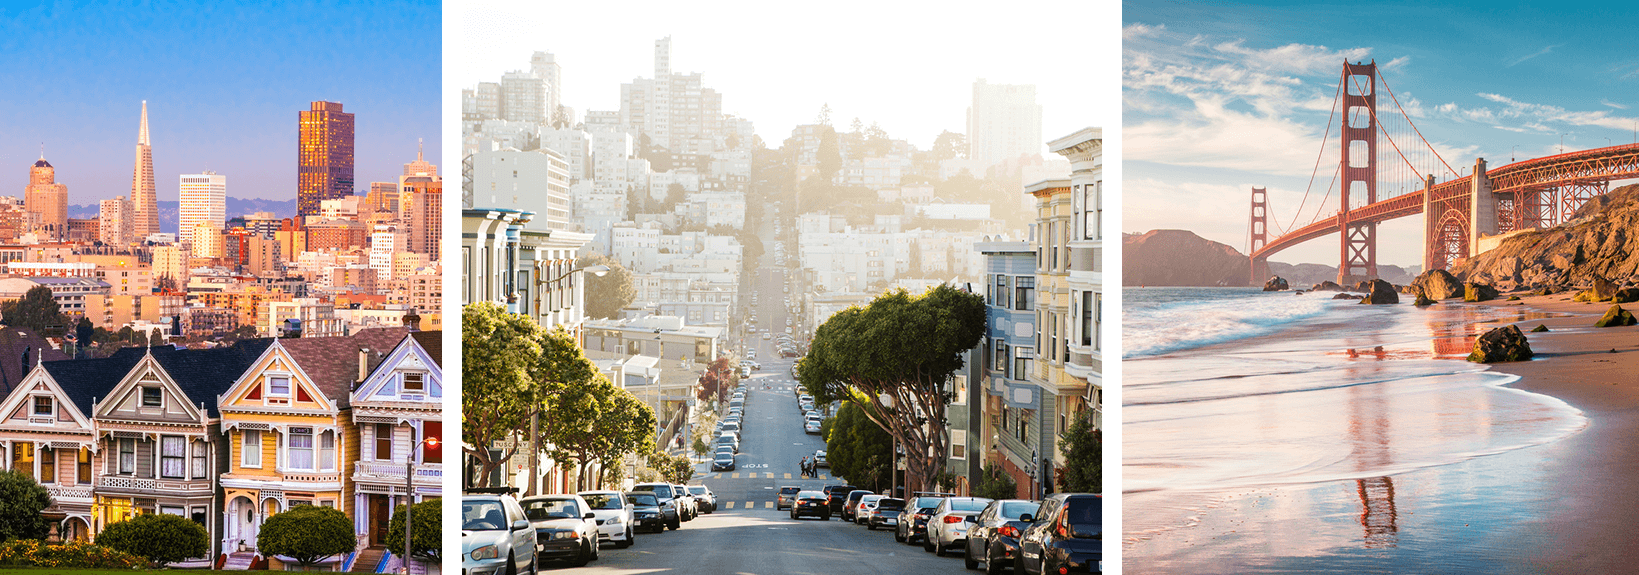 San Francisco sightseeing locations